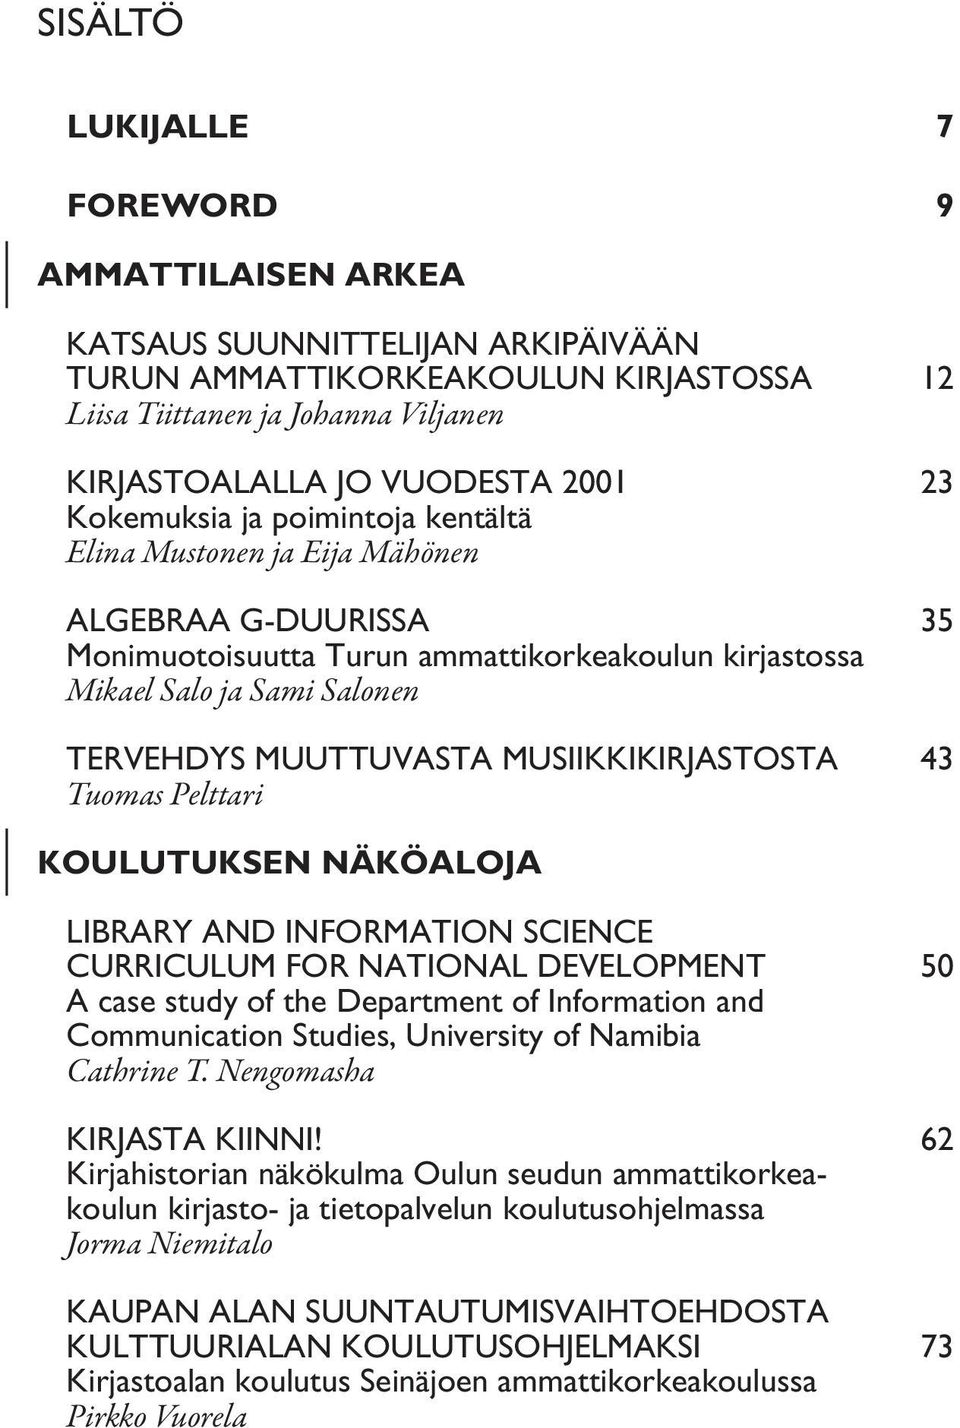 MUSIIKKIKIRJASTOSTA 43 Tuomas Pelttari KOULUTUKSEN NÄKÖALOJA LIBRARY AND INFORMATION SCIENCE CURRICULUM FOR NATIONAL DEVELOPMENT 50 A case study of the Department of Information and Communication